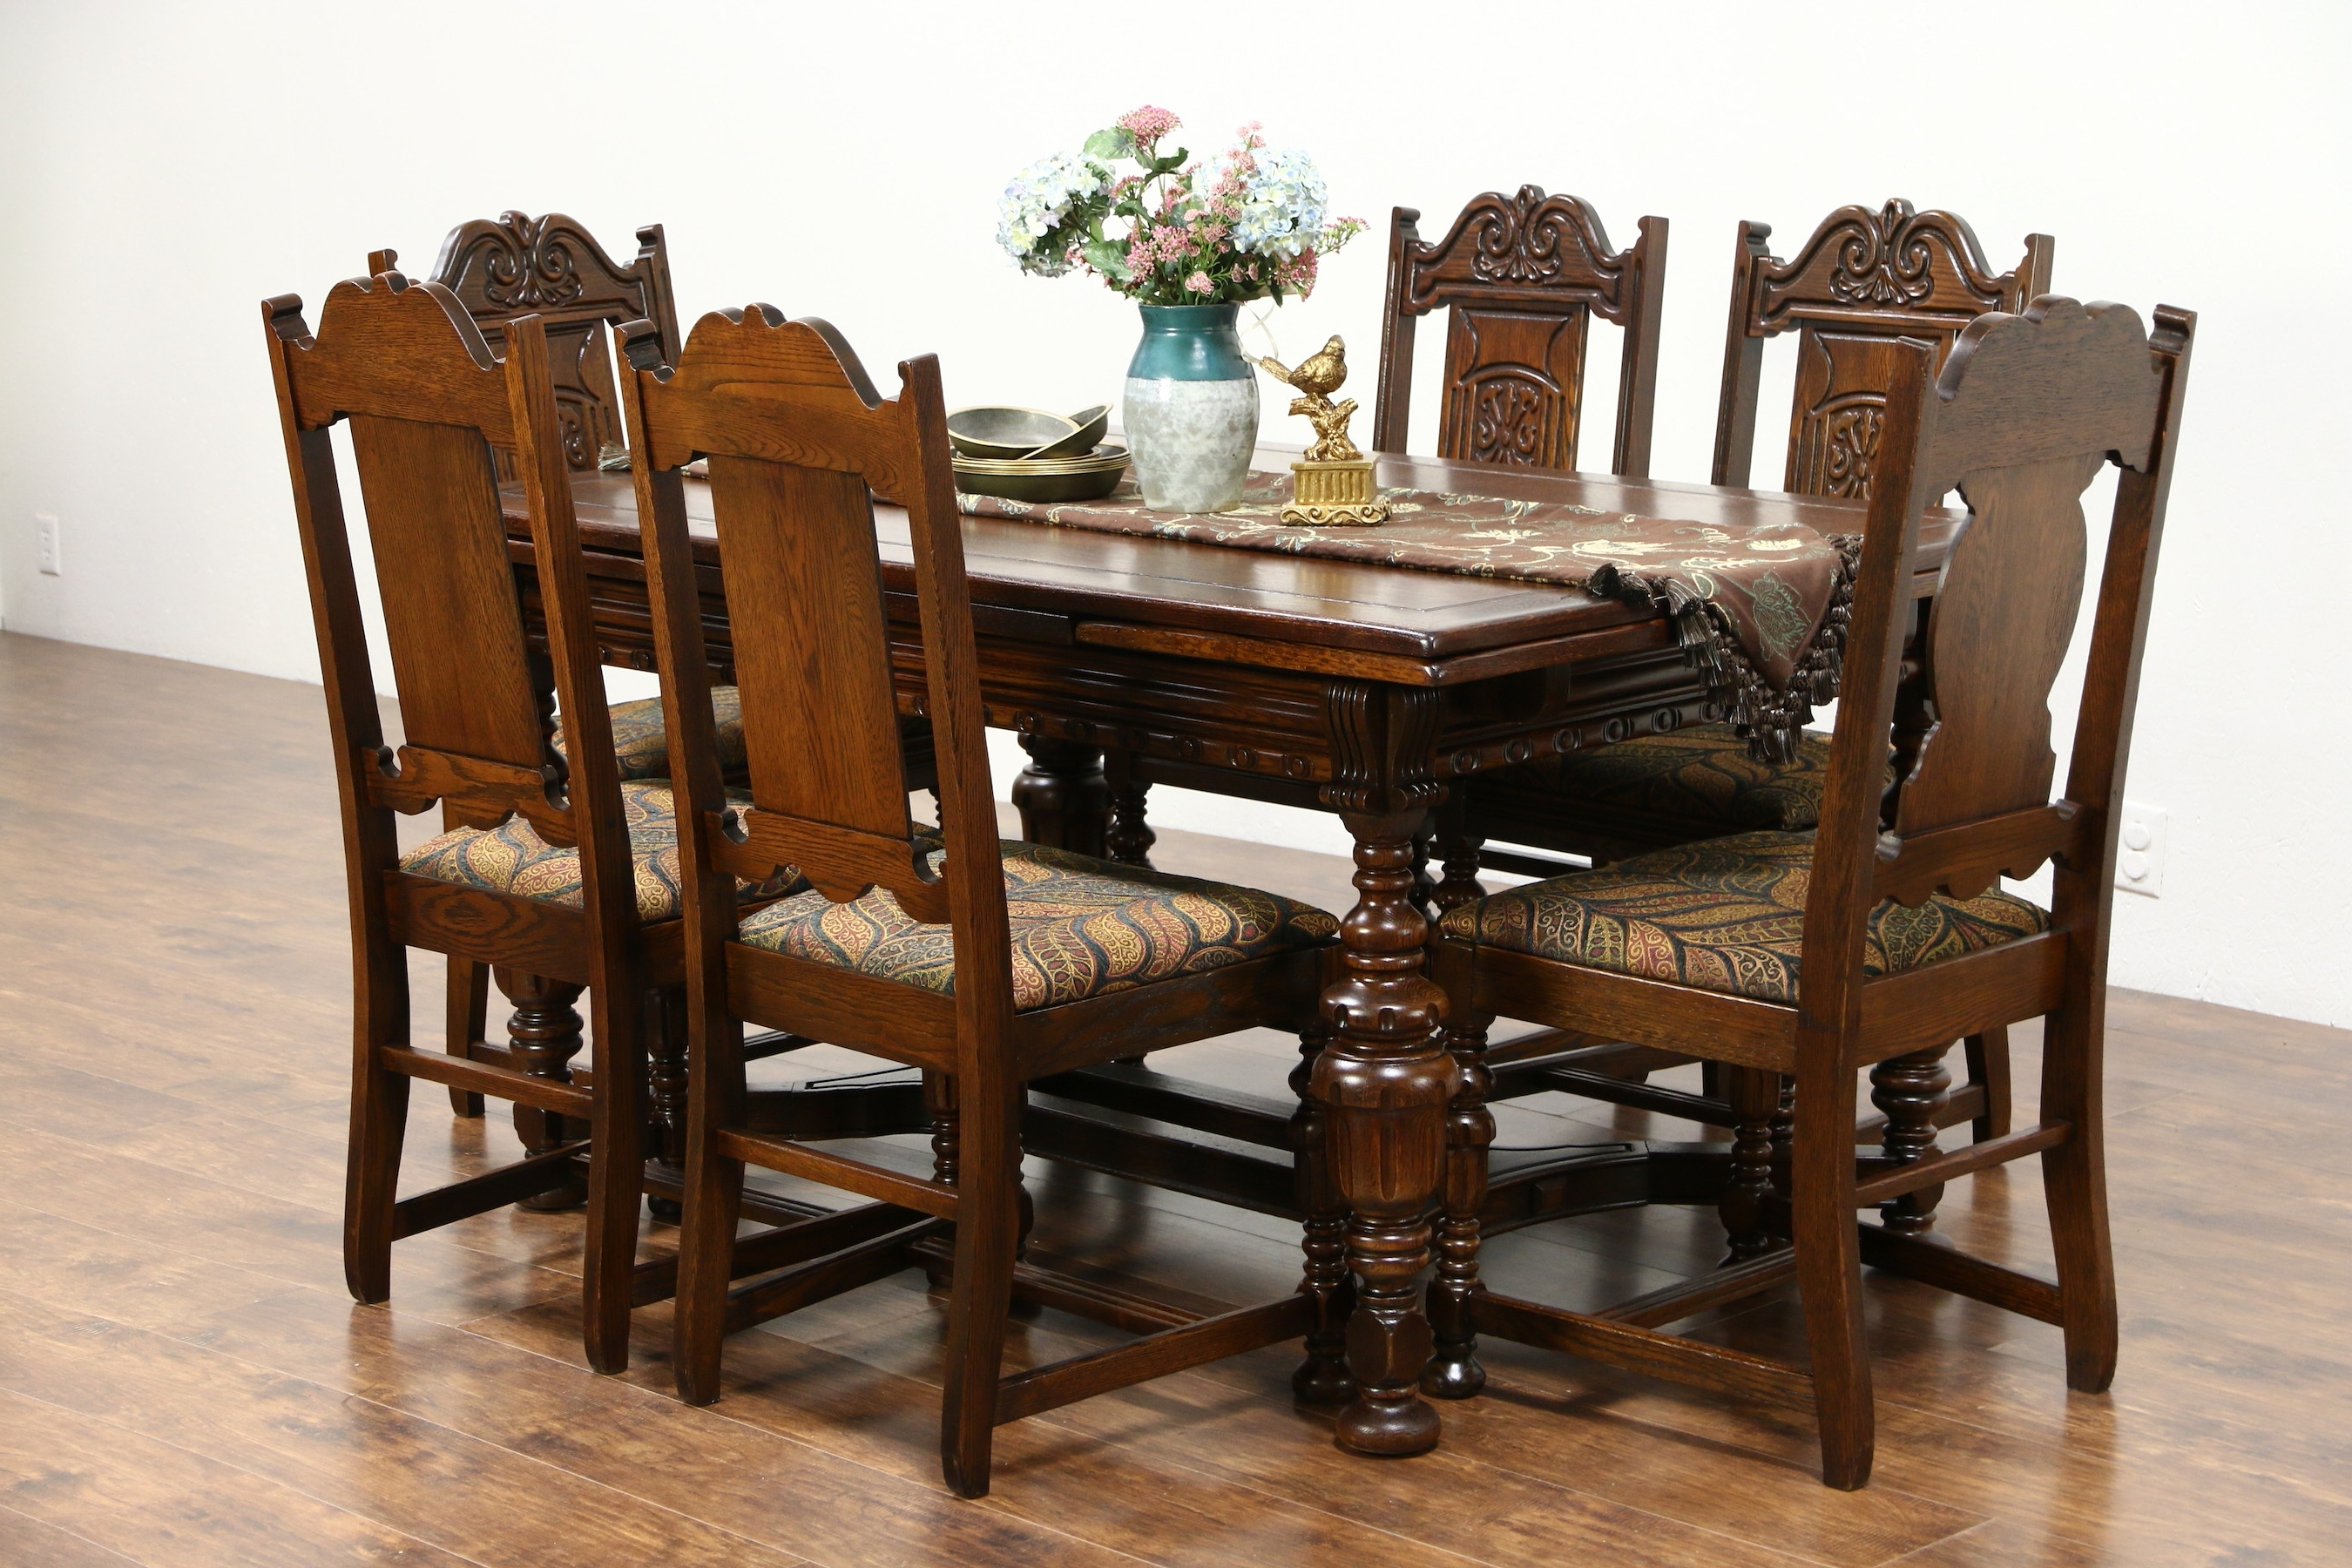 Most Popular Sold – Tudor 1925 Antique Carved Oak Dining Set, Table, 6 Chairs Intended For Dining Tables With 6 Chairs (View 7 of 25)